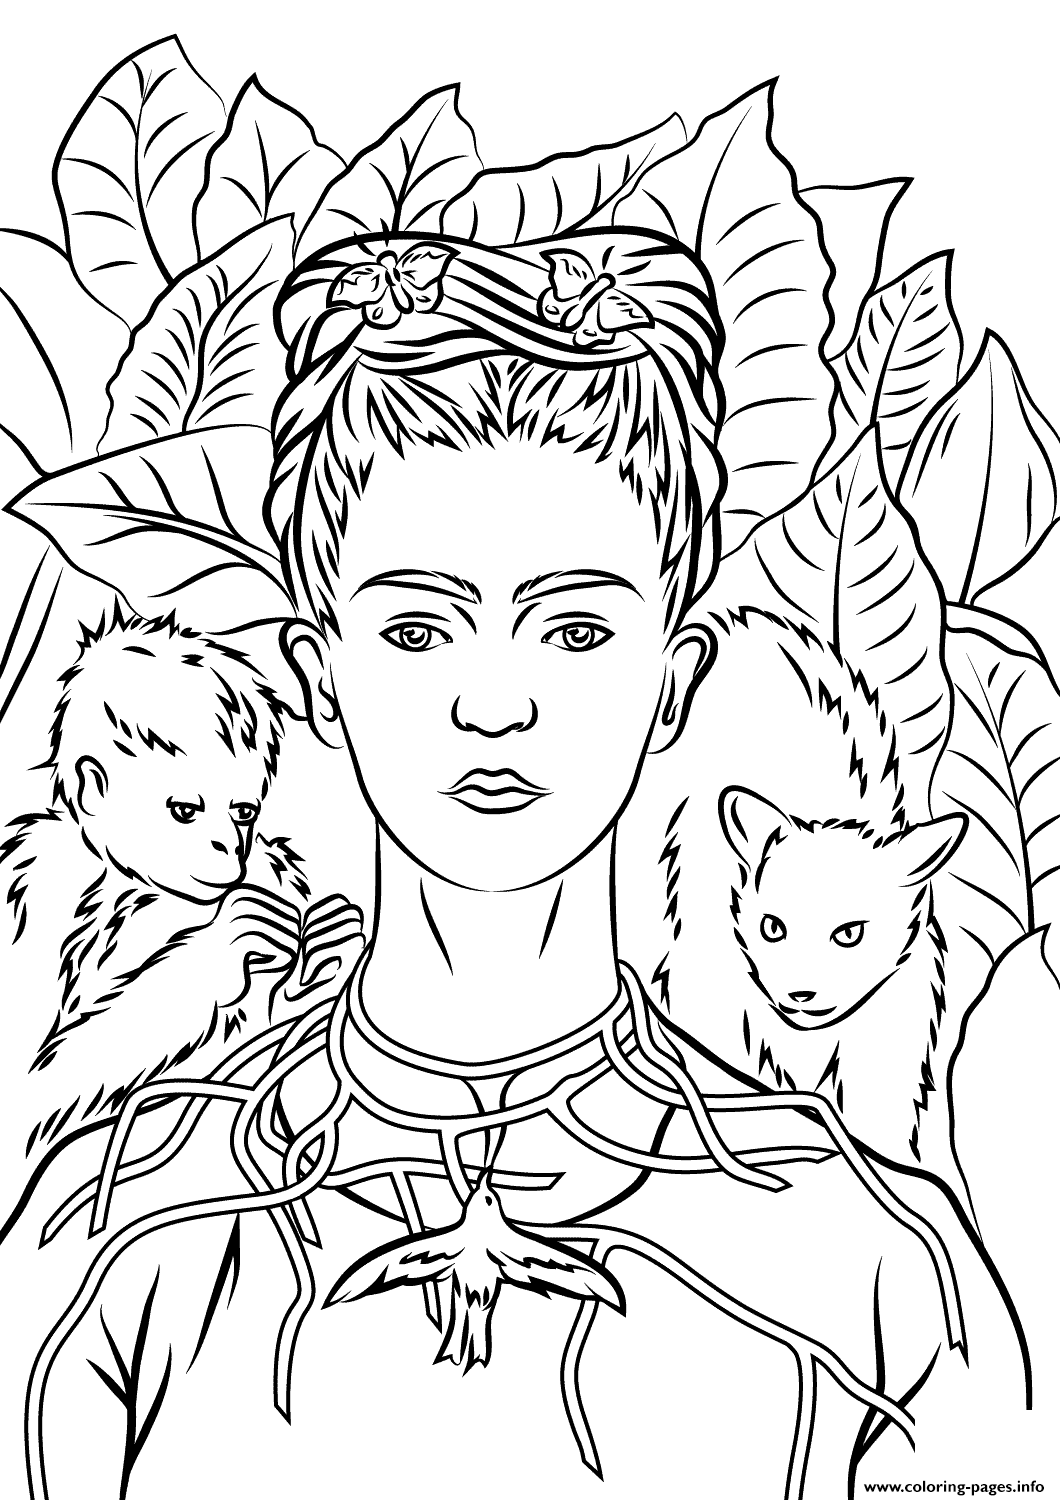 Print self portrait with necklace of thorns by frida kahlo coloring ...